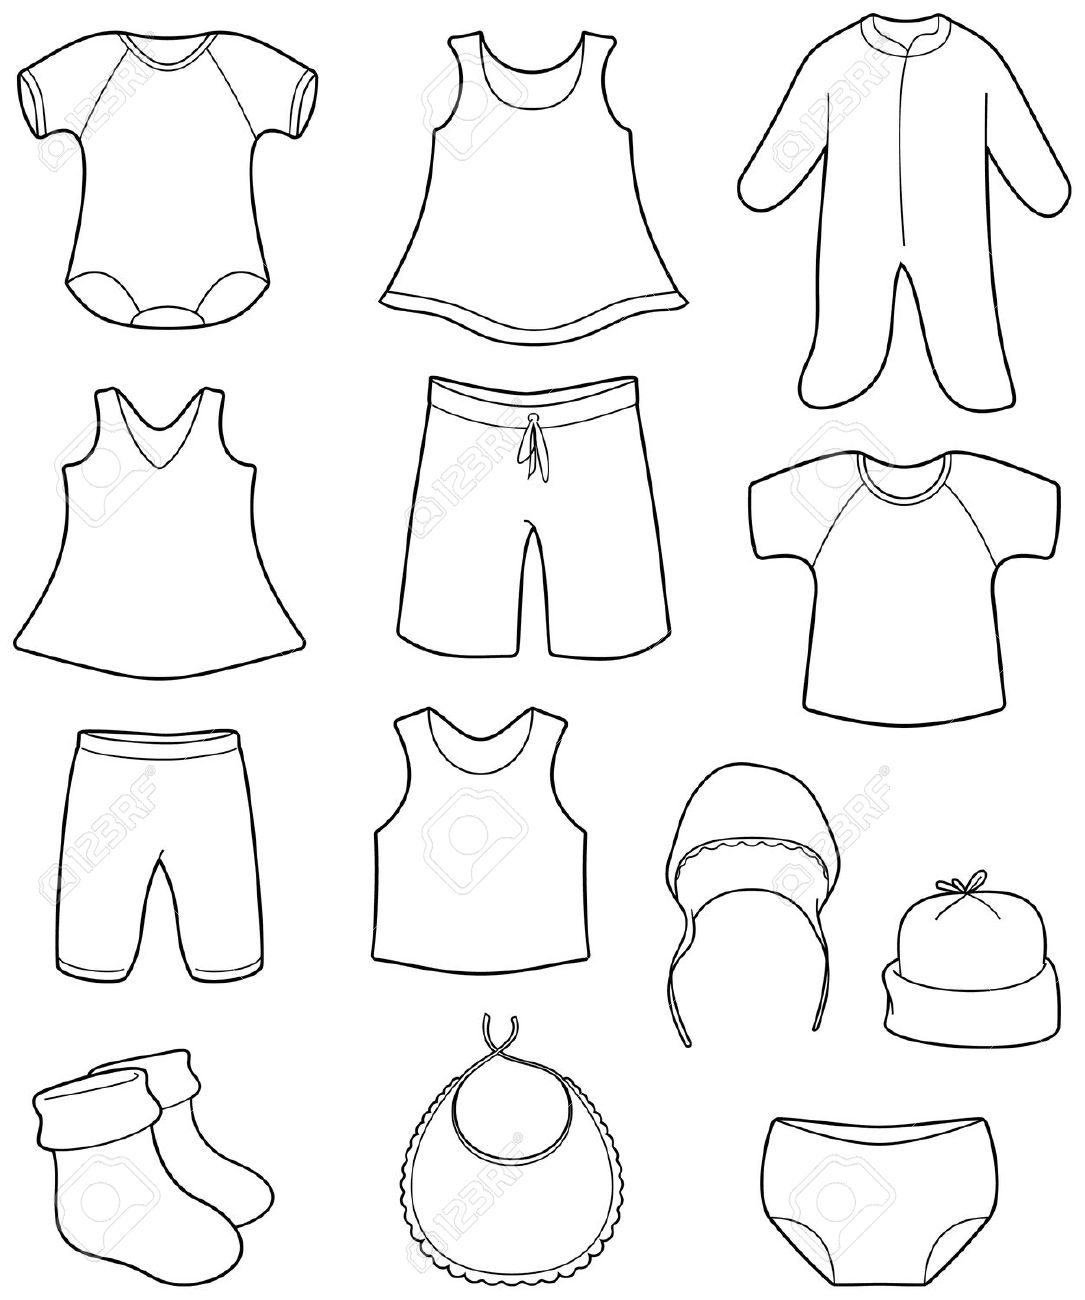 Baby Vest Drawing At Getdrawings